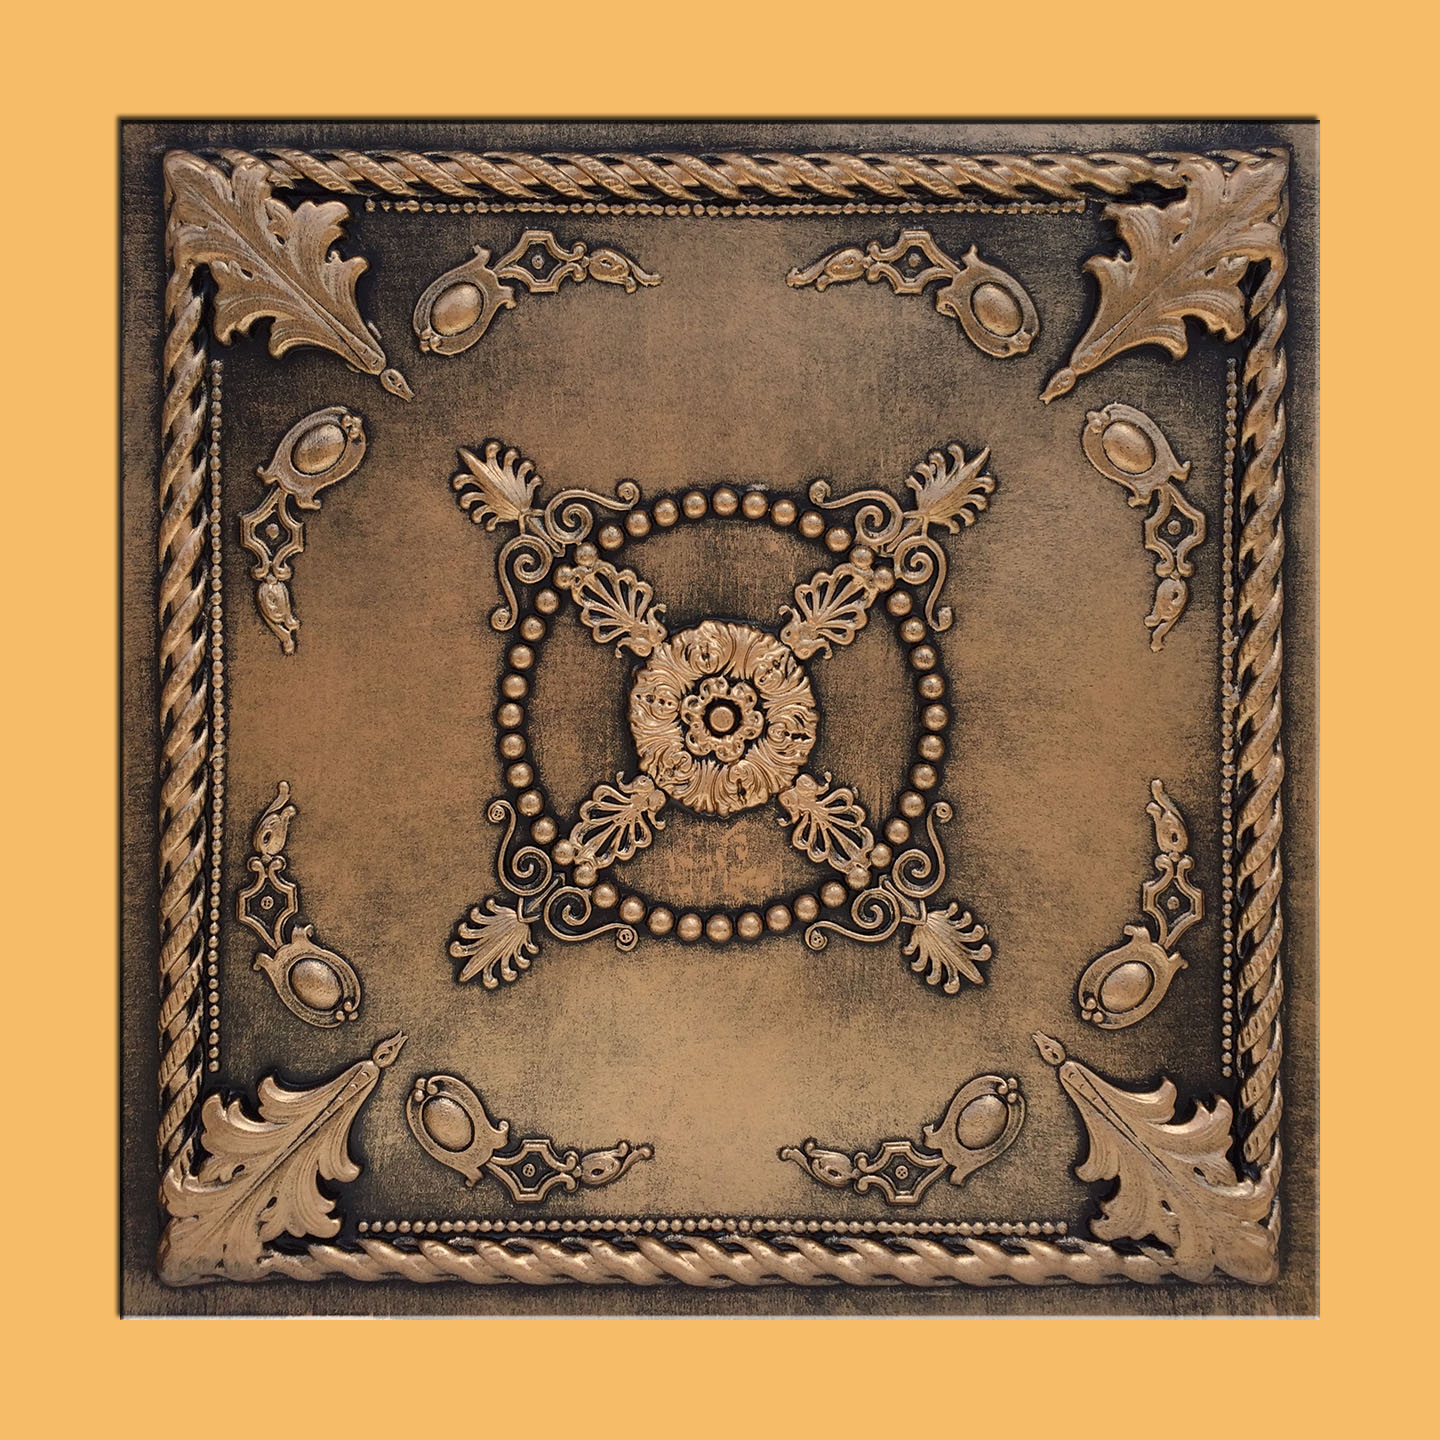 24x24 jewel antique bronze black pvc 20mil ceiling tile c our newest addition plastic ceiling tiles they come in 24x24 size feather light easy to install easy to clean stain resistant water resistant dailygadgetfo Image collections